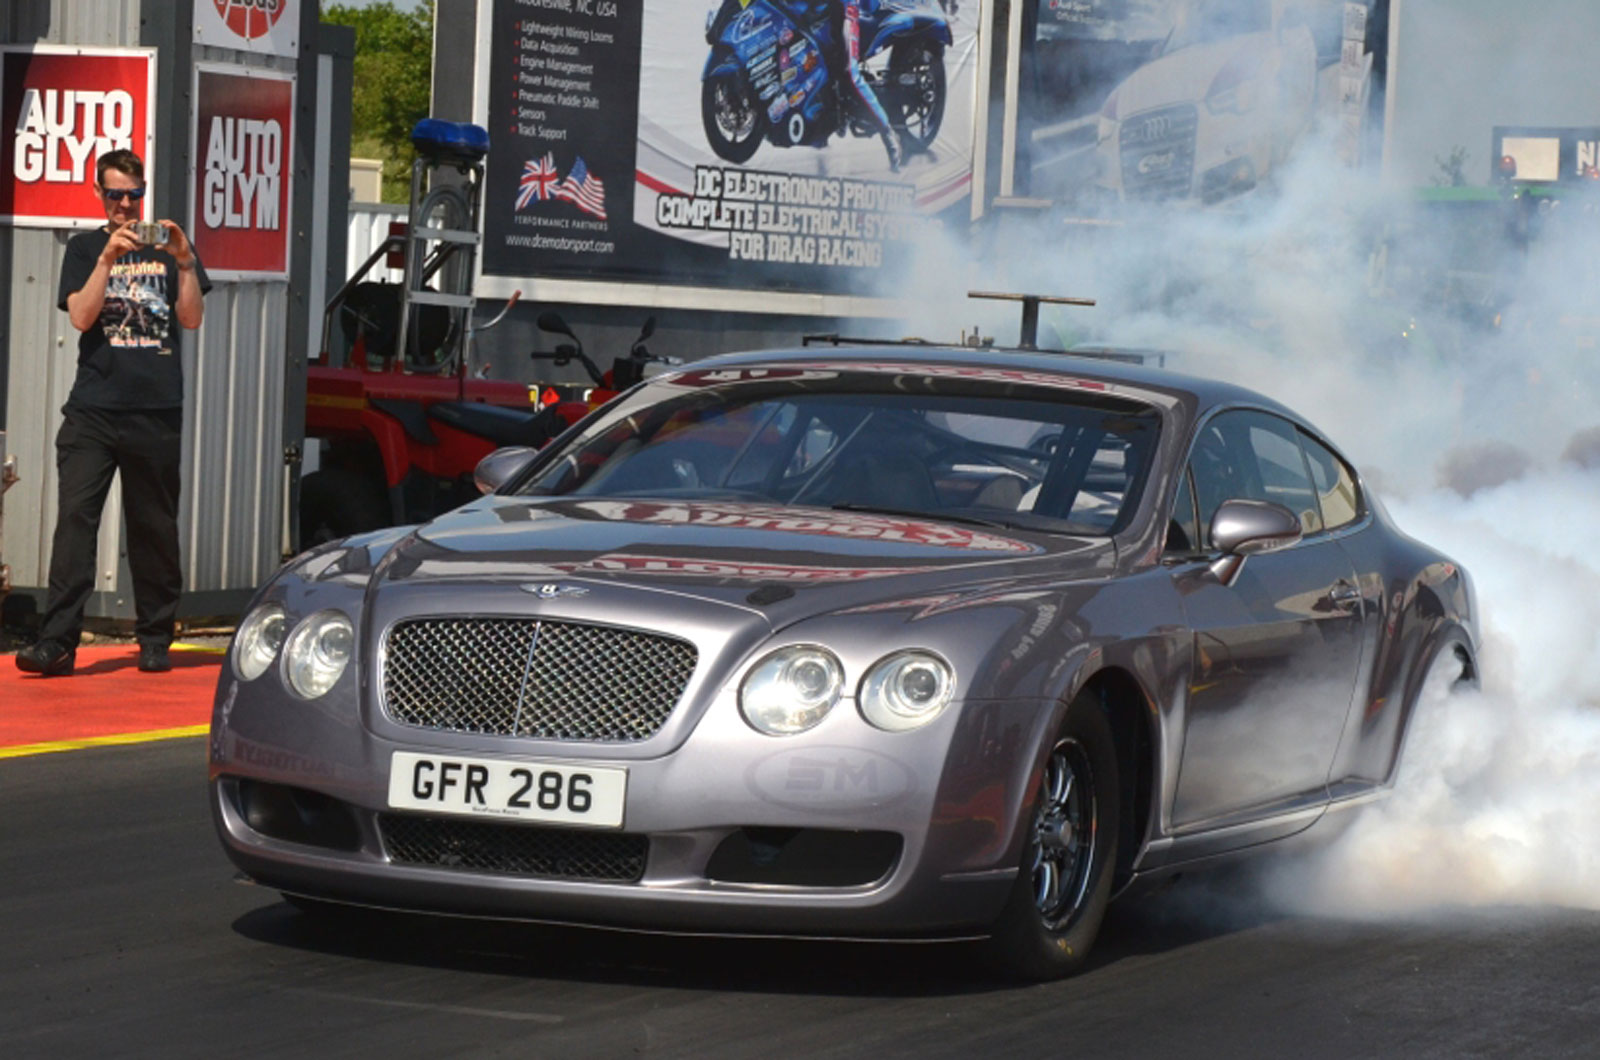 Bentley Continental GT drag racer